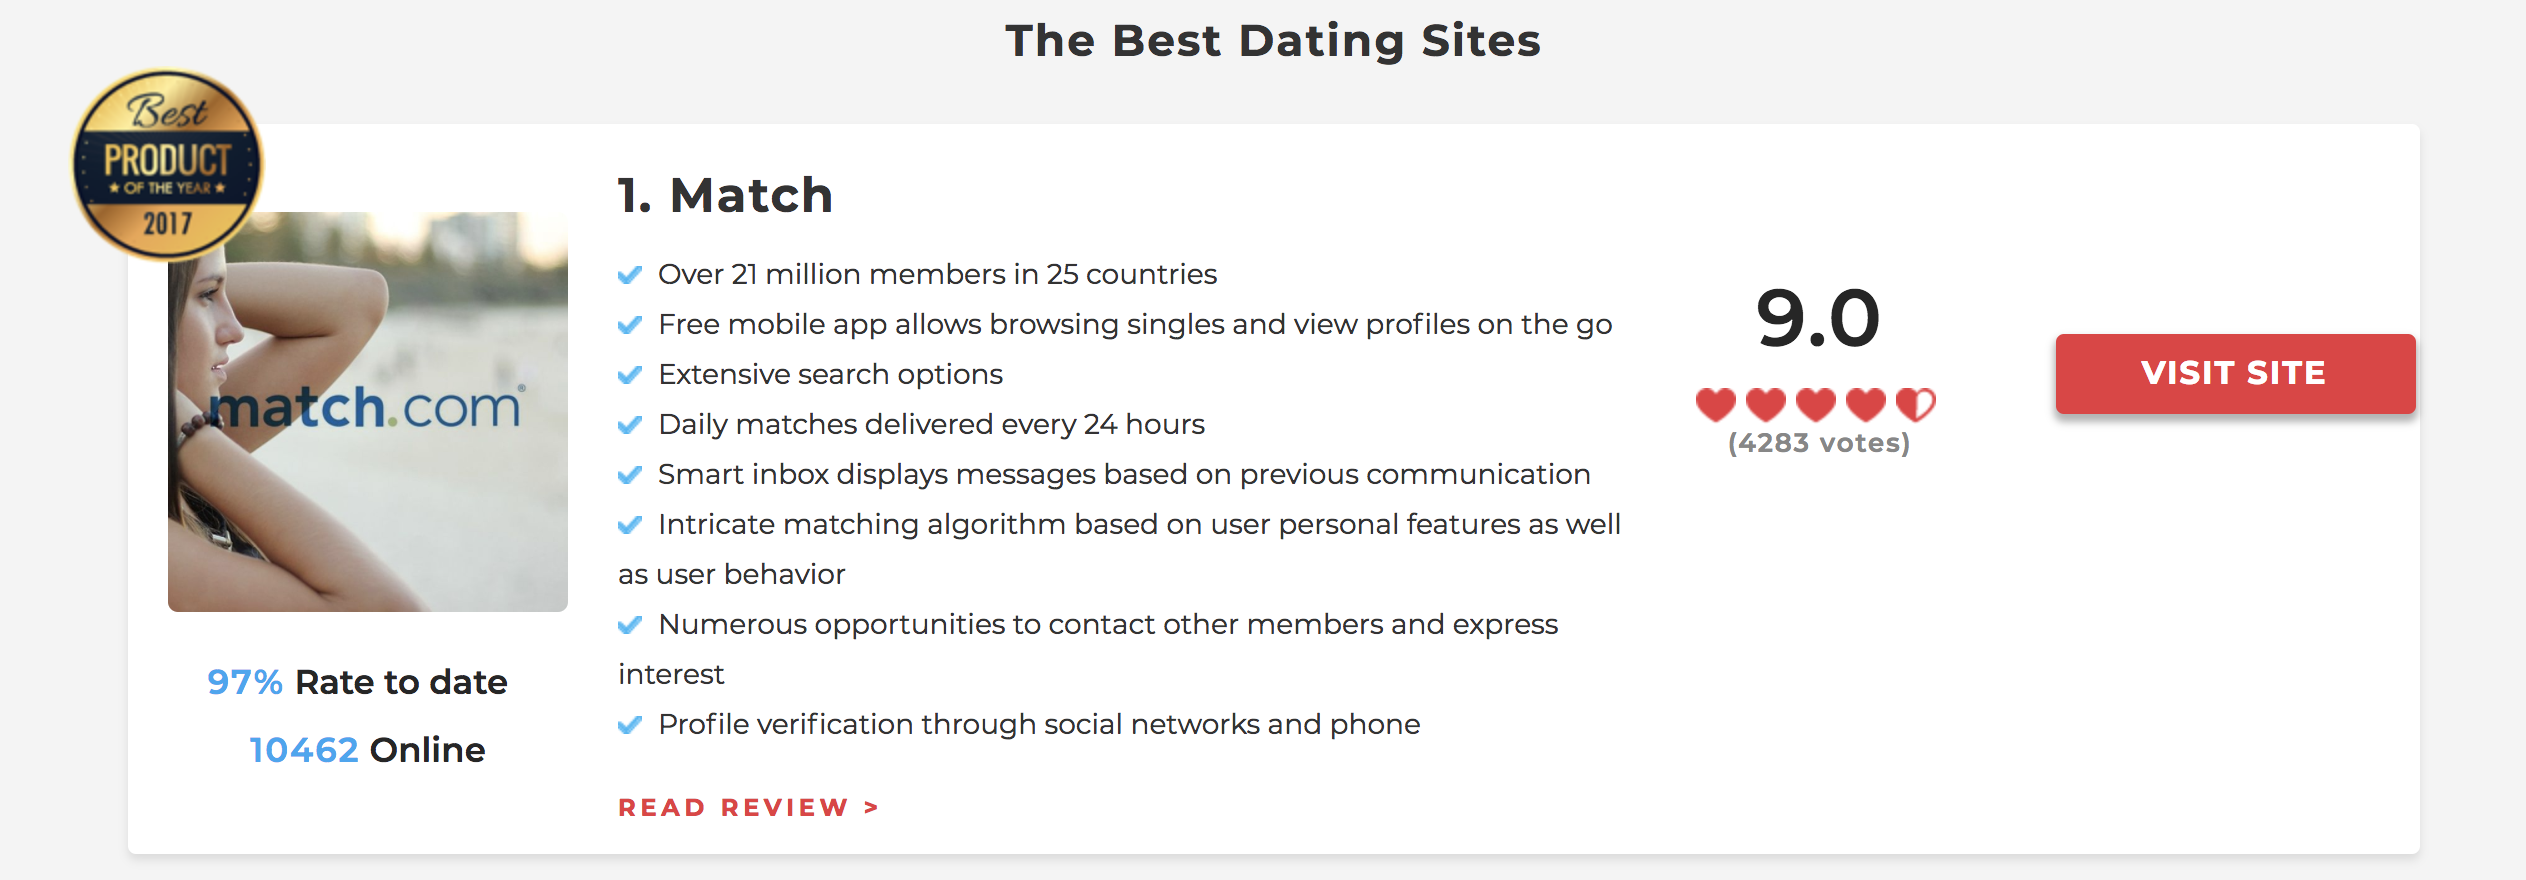 Voted best online dating site